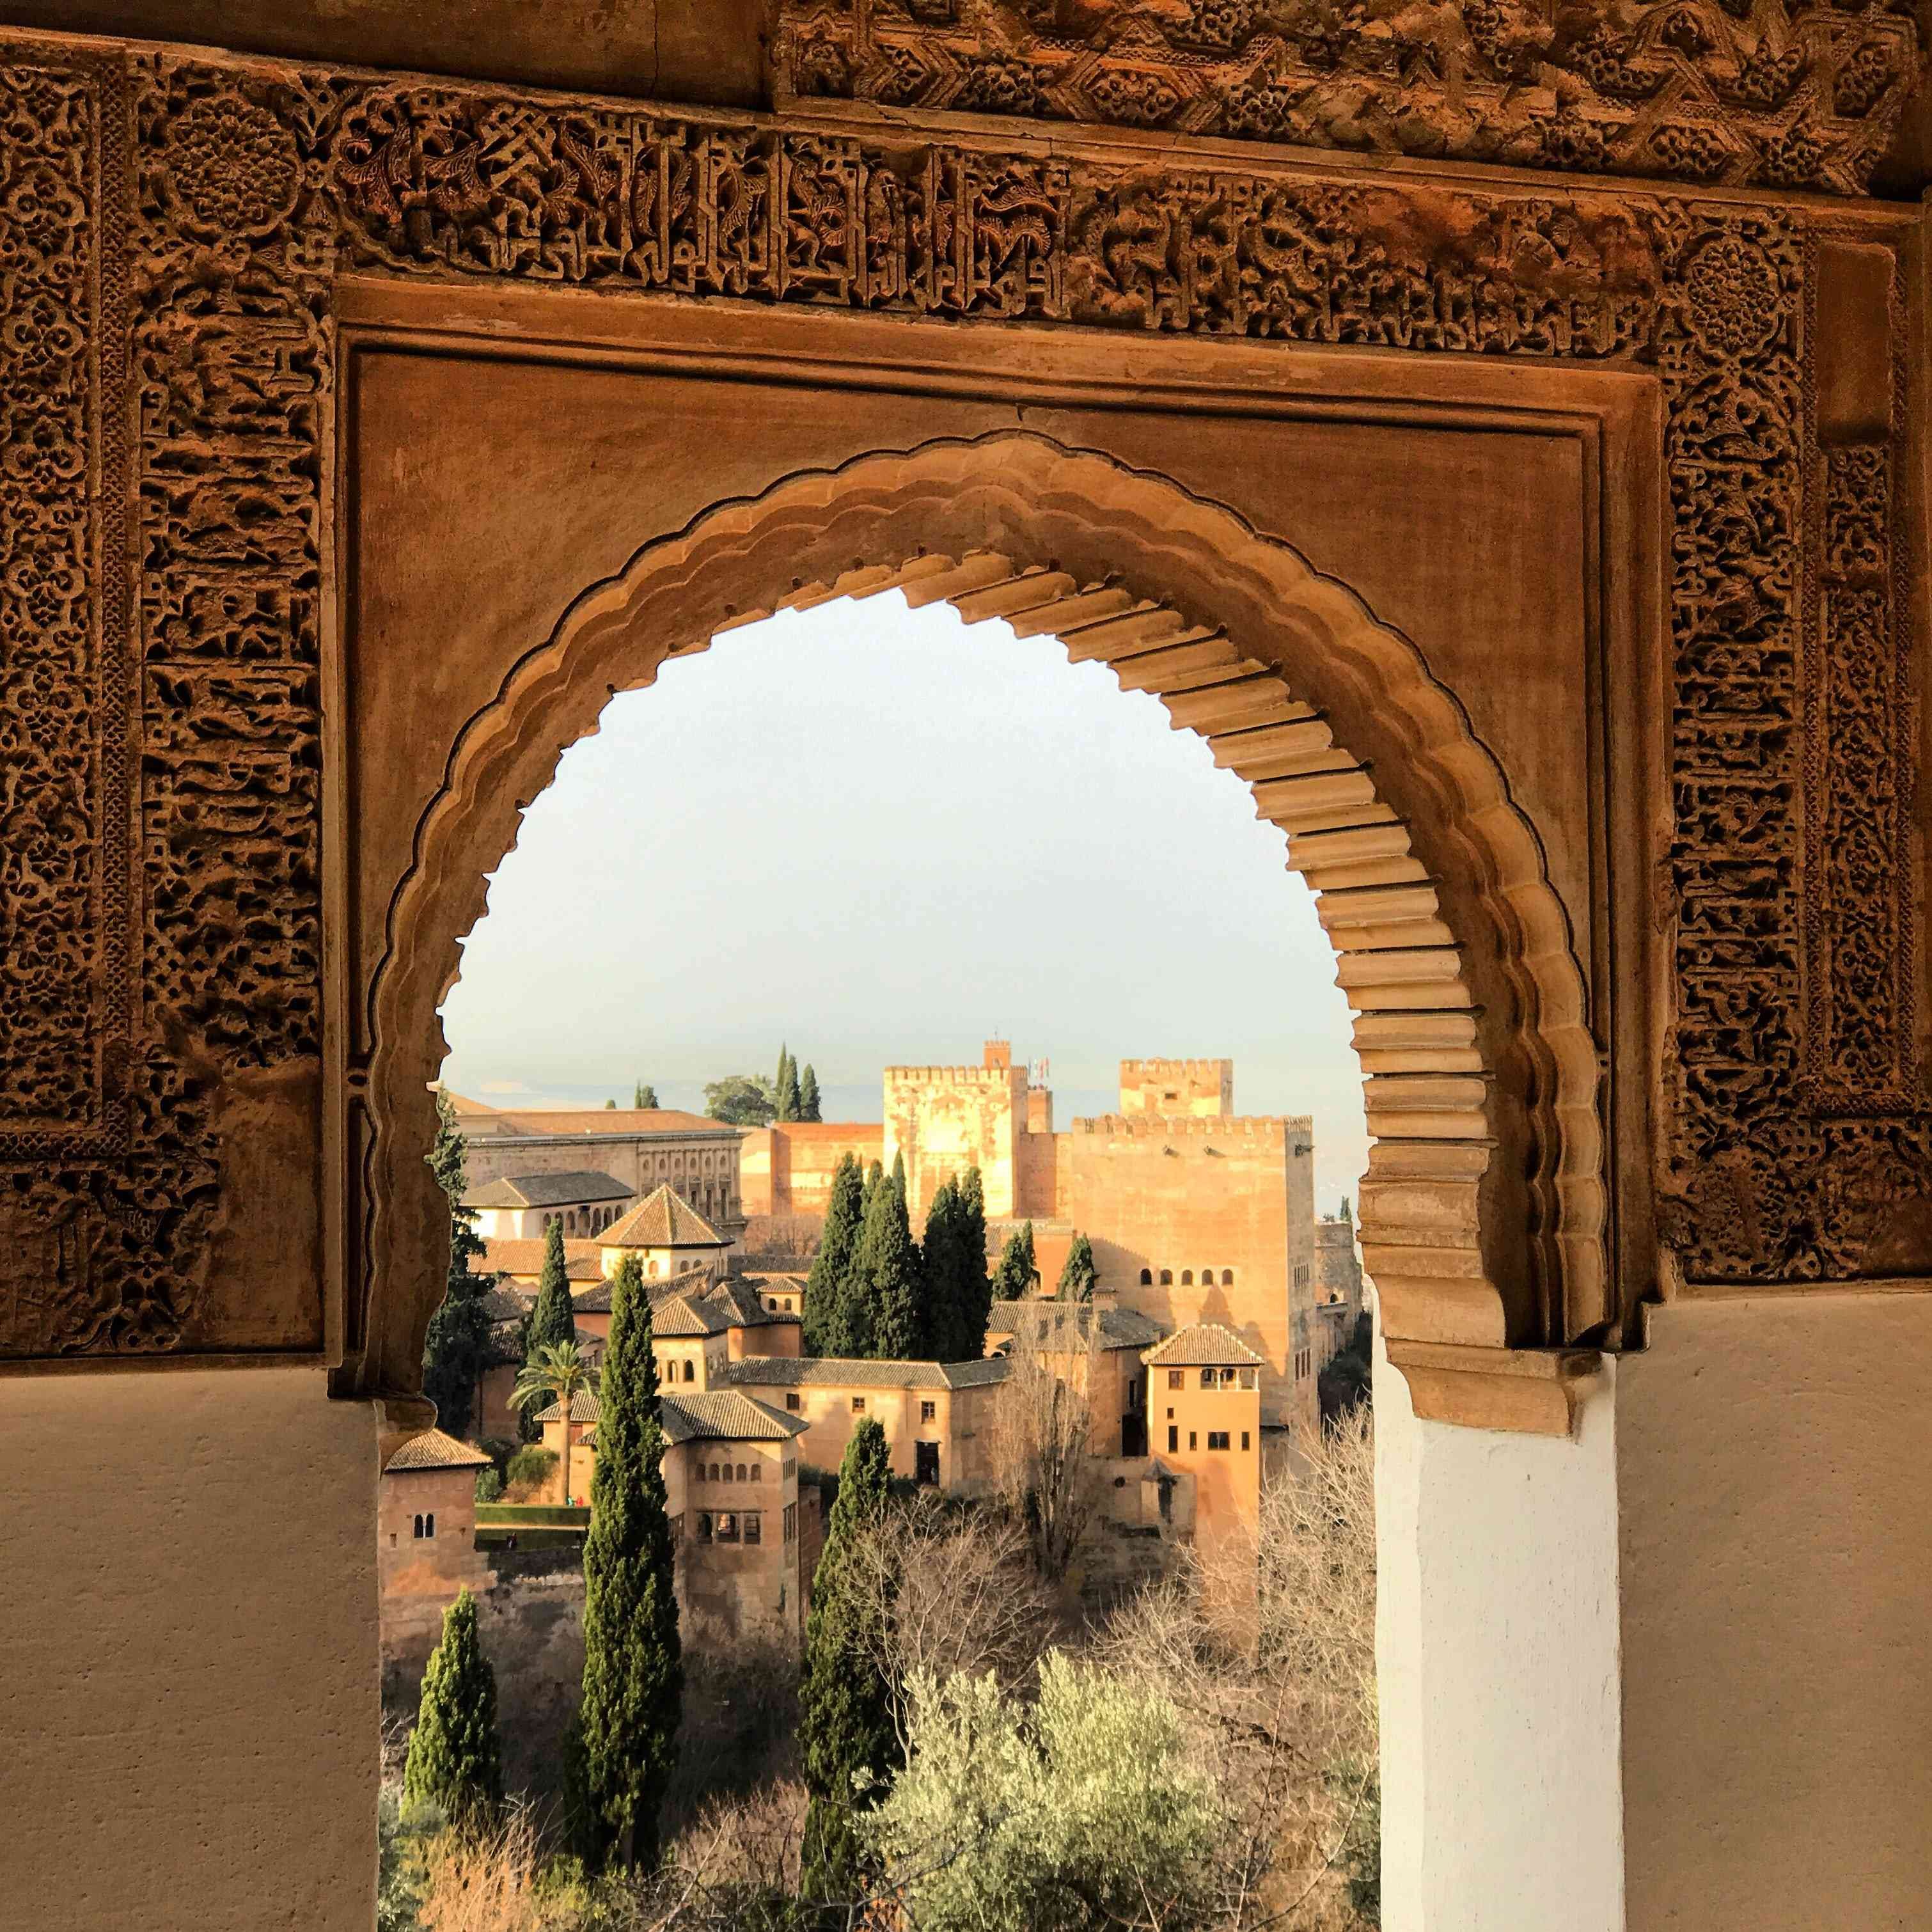 View of the Alhambra in Granada Spain